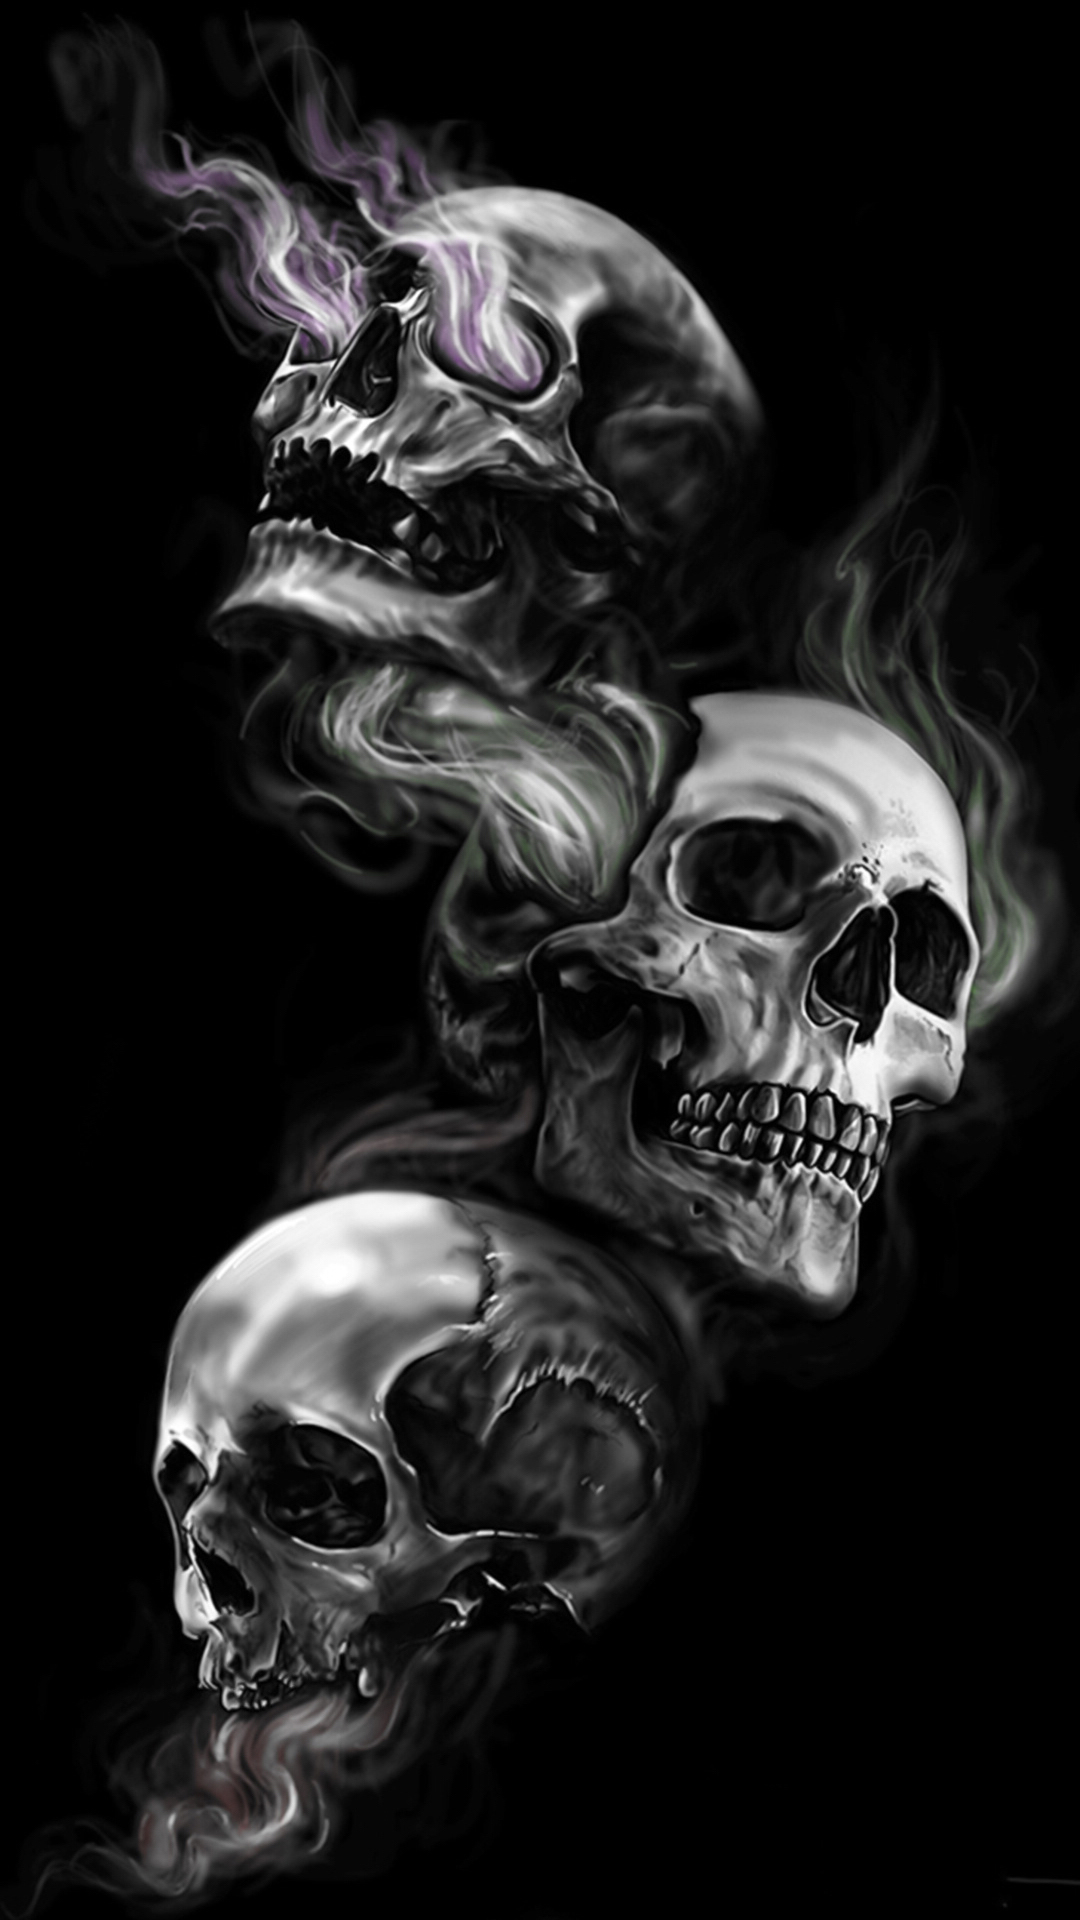 Badass Wallpapers For Android 04 0f 40 Three Skulls on Dark Black Background | HD Wallpapers ...